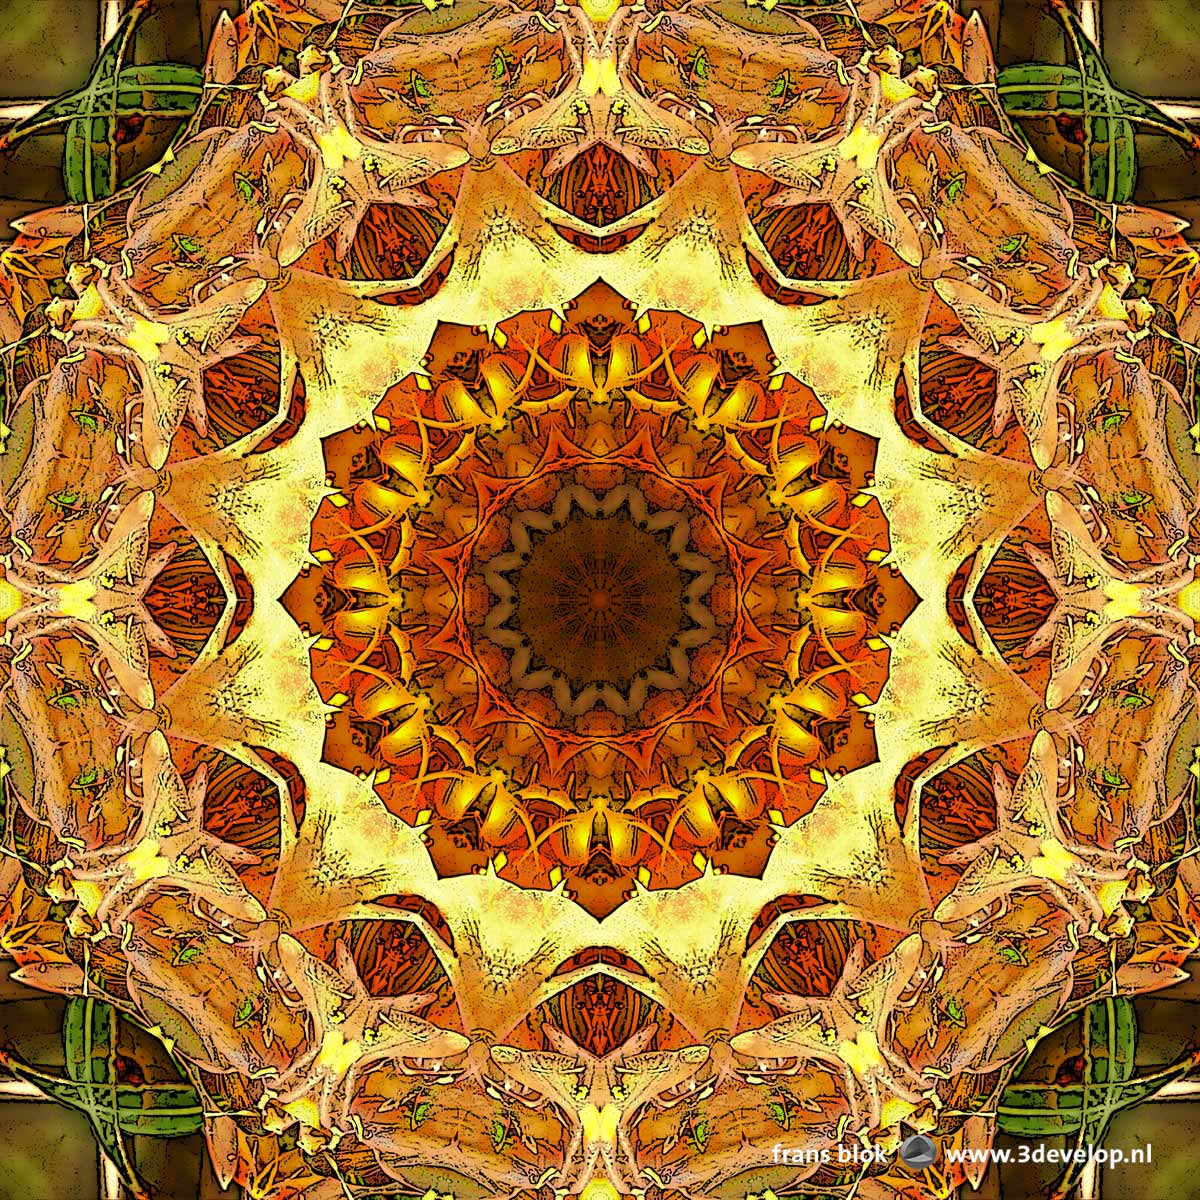 A circular, madala-esque flowery image in yellow and orange hues, based on a photograph of azaleas in springtime